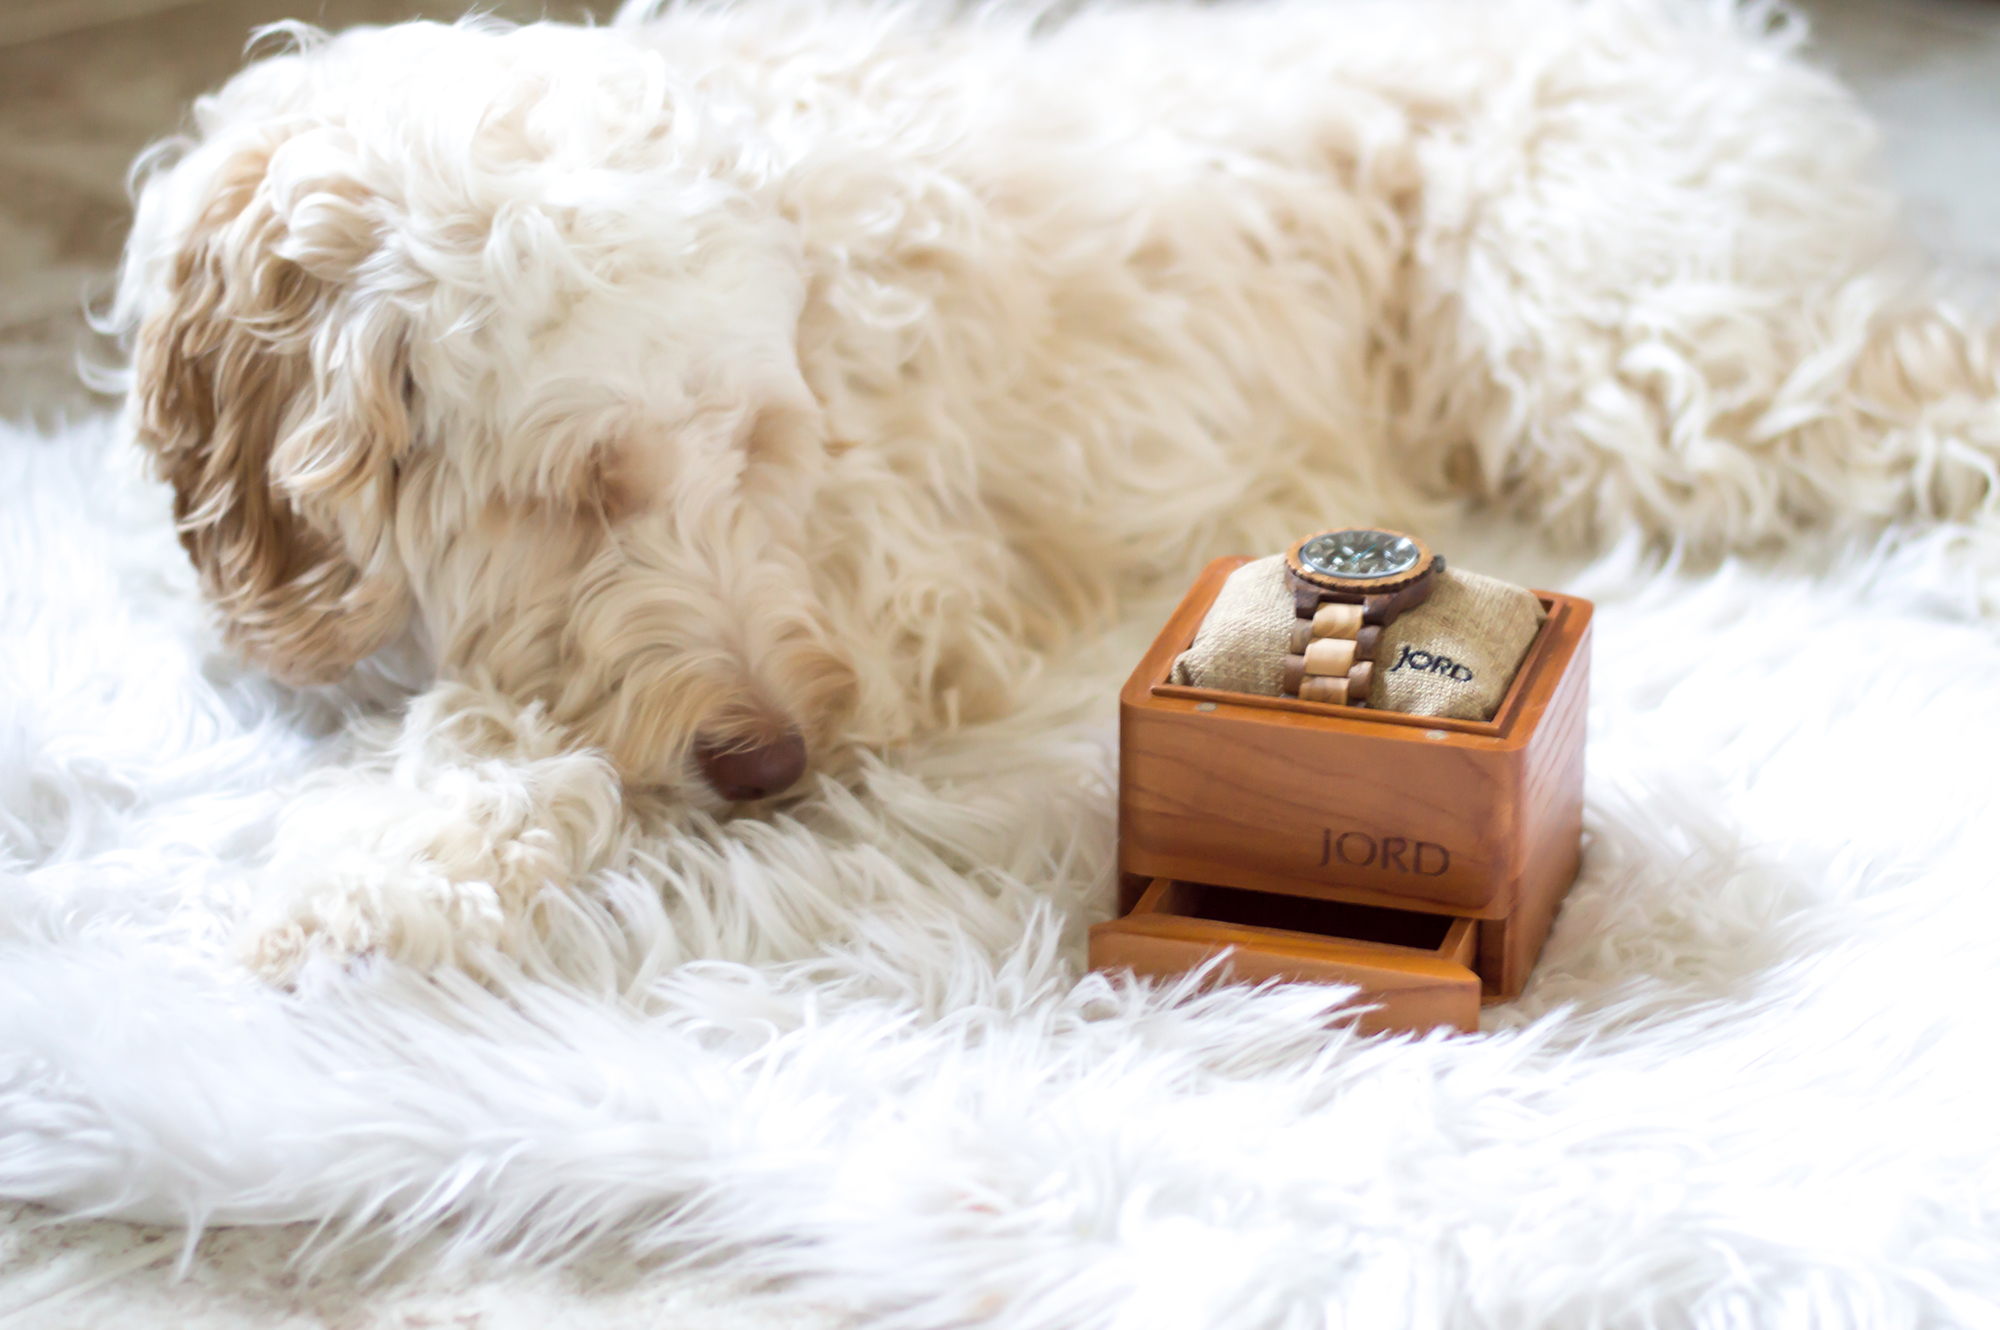 styelled-elle-elisabeth-fashion-style-blogger-jord-wood-watches-luxury-watch-dover-series-valentines-day-for-him-ootd-australian-labradoodle-04